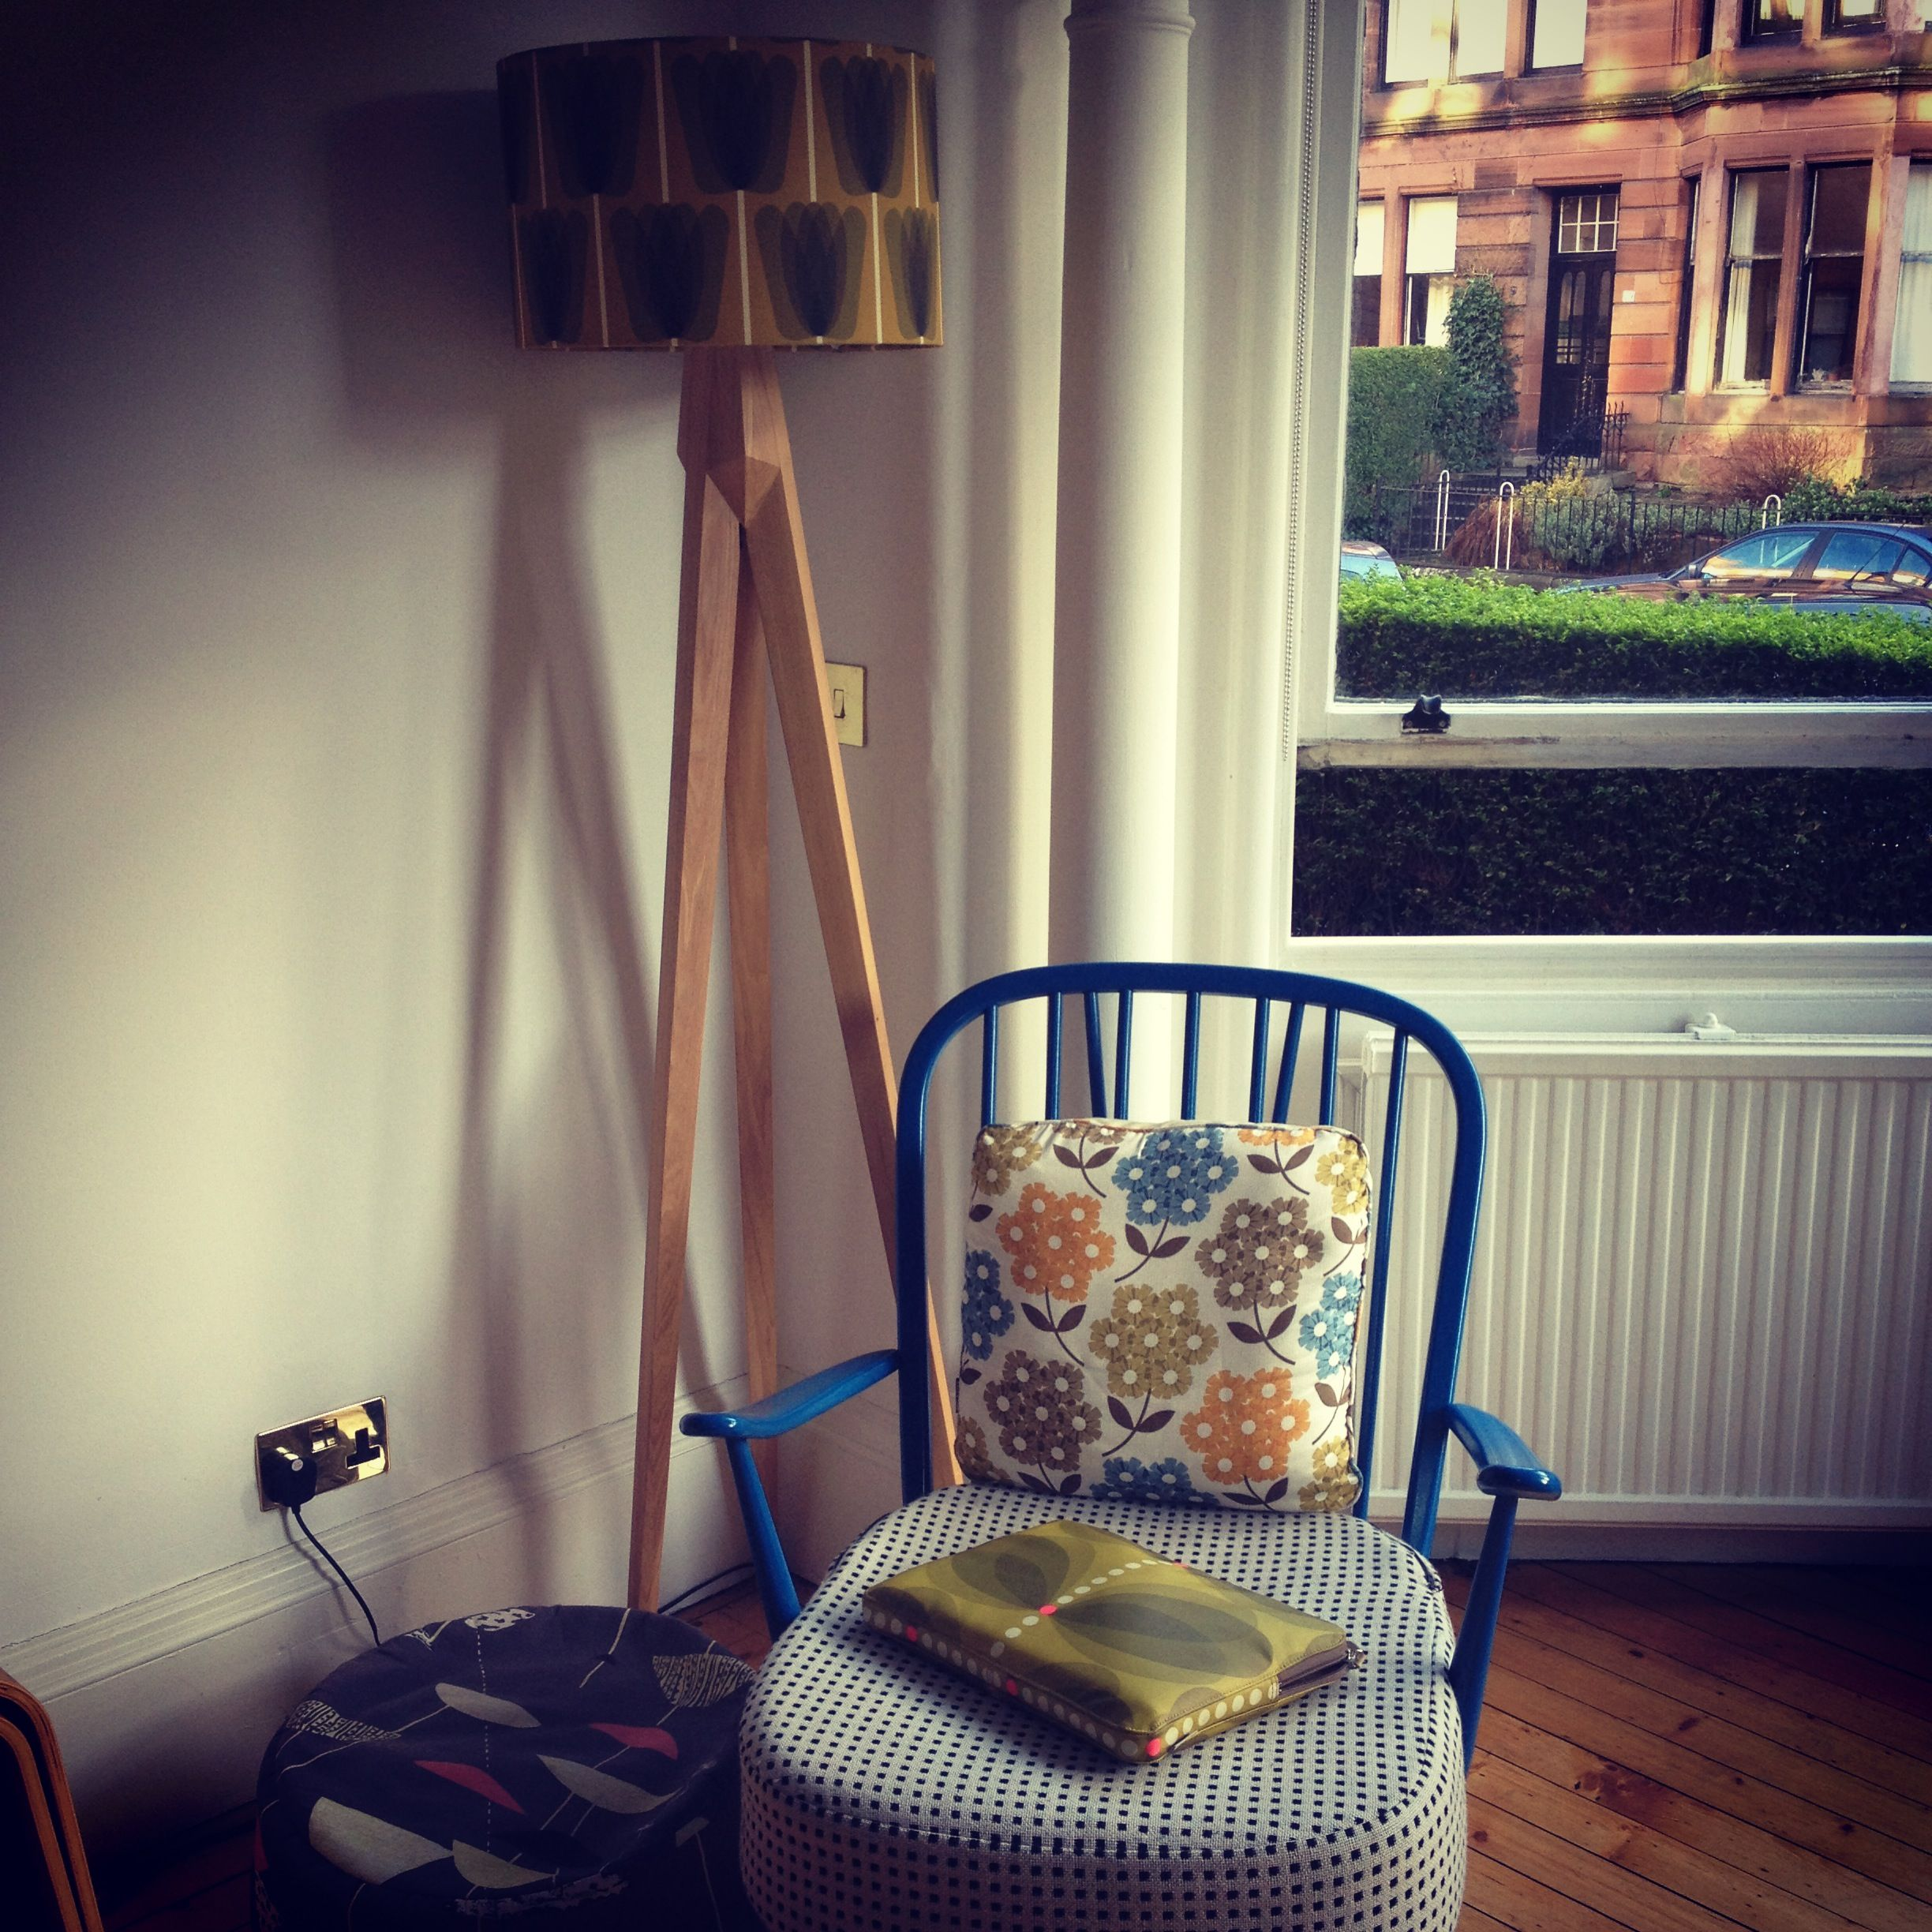 Ercol chair with Orla Kiely cushion and lampshade Habitat oak light